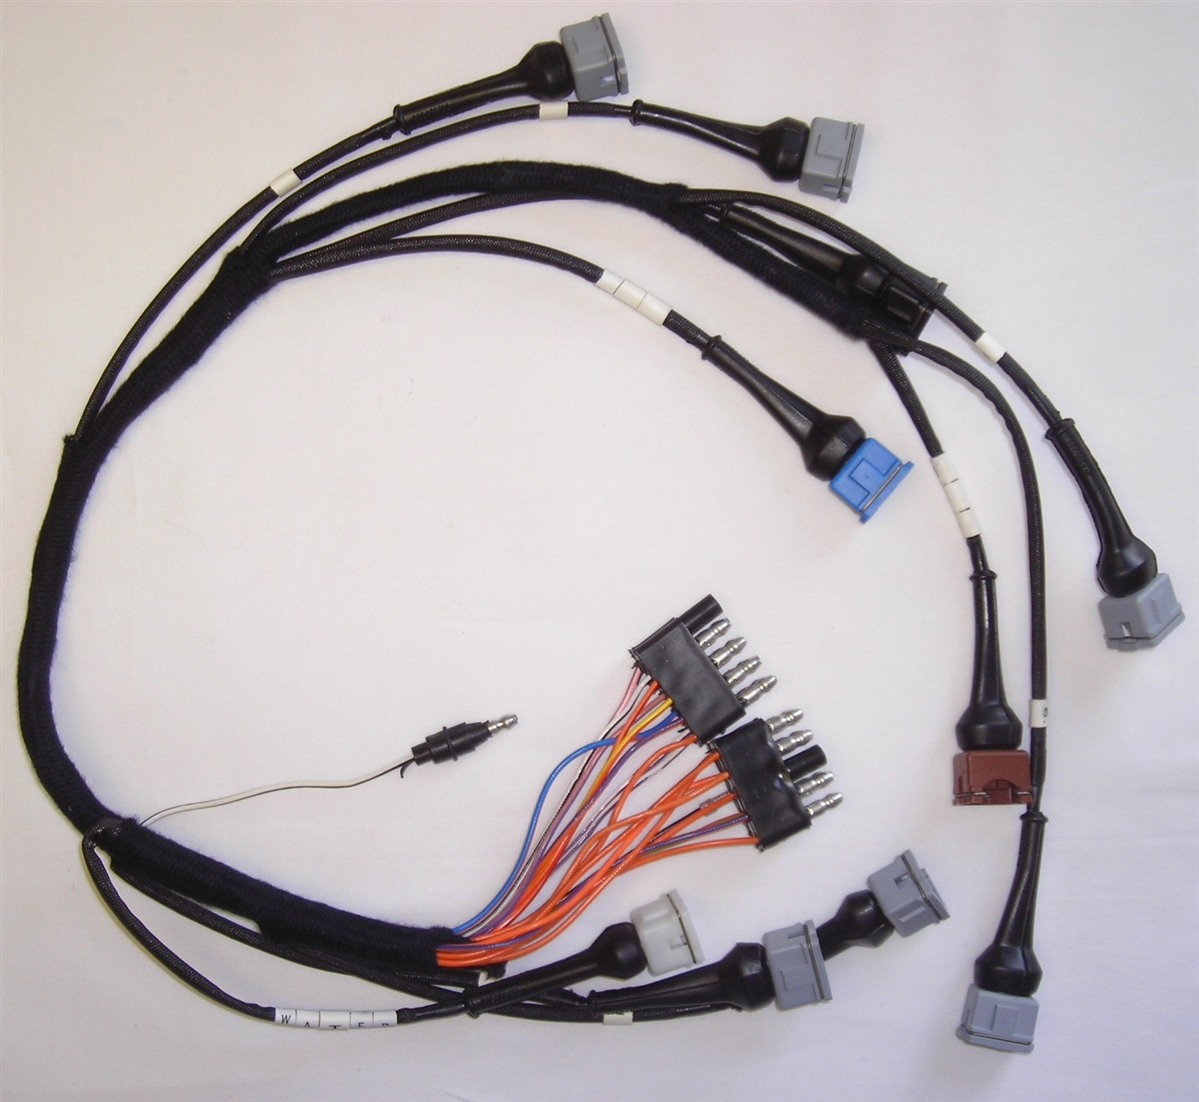 XJ6311 2?1403006000 jaguar series 3 xj6 fuel injection harness jaguar wiring harness at fashall.co